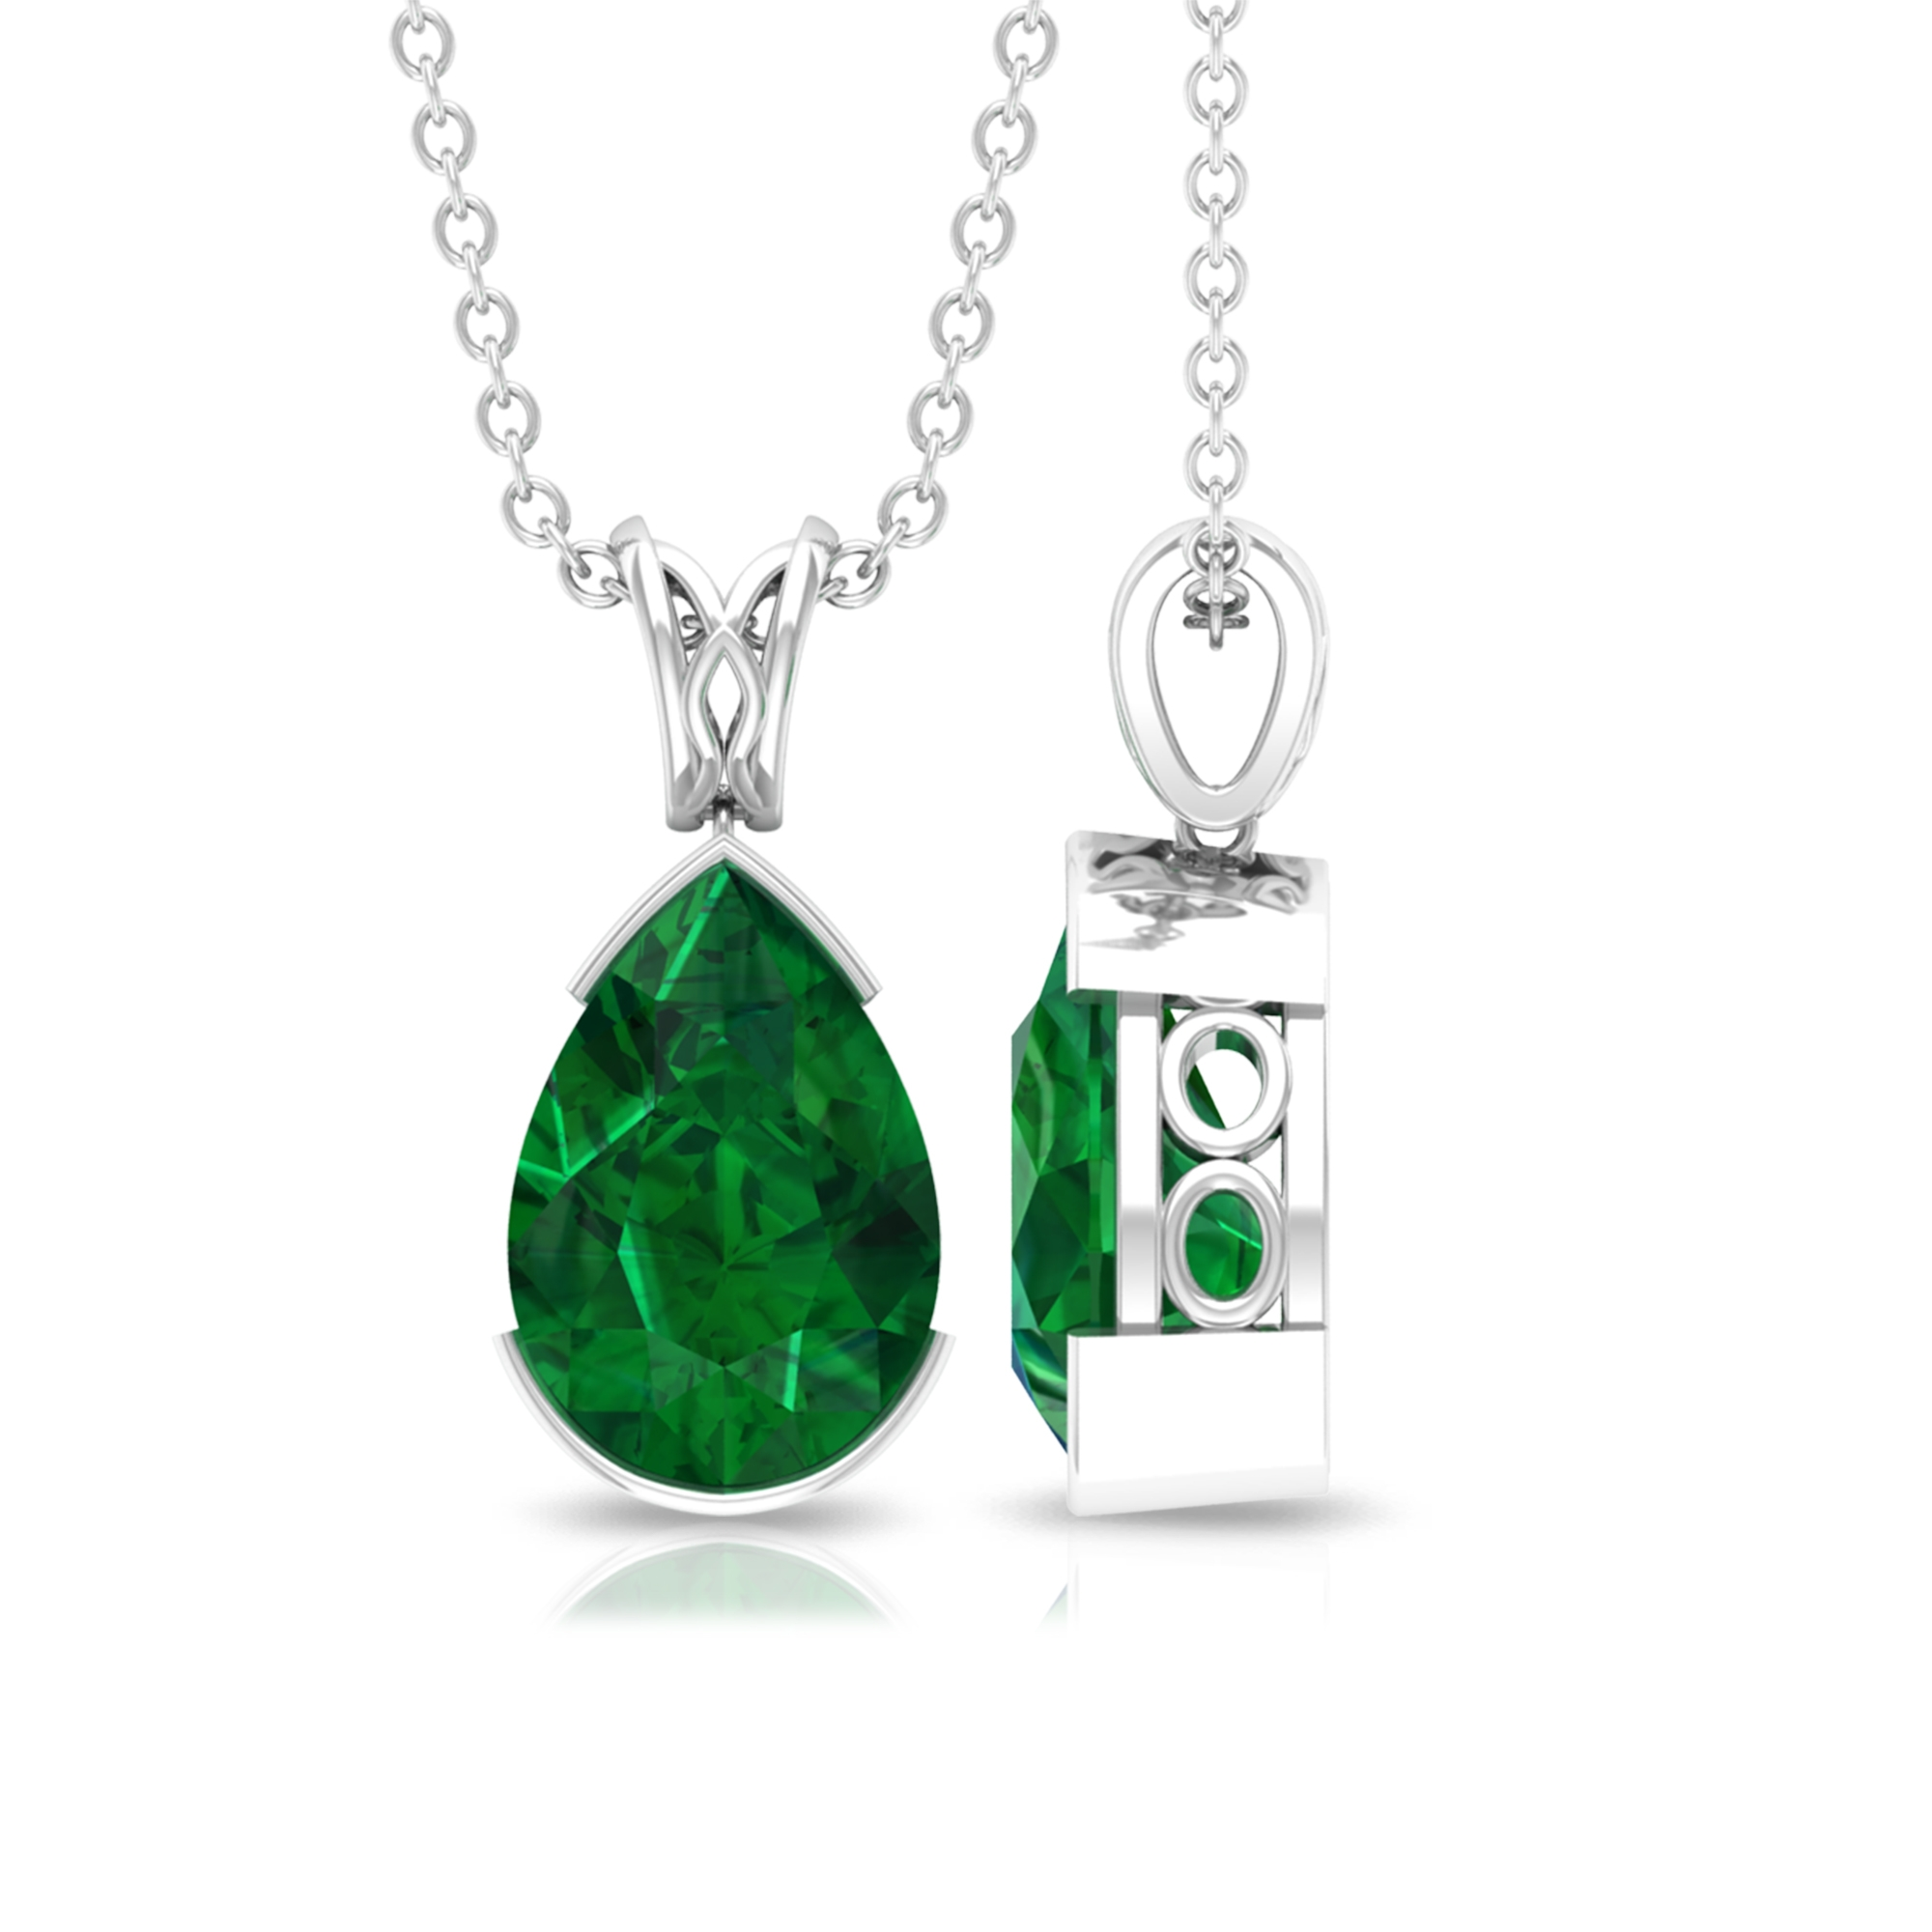 7X10 MM Pear Cut Emerald Solitaire Simple Pendant in Half Bezel Setting with Decorative Bail